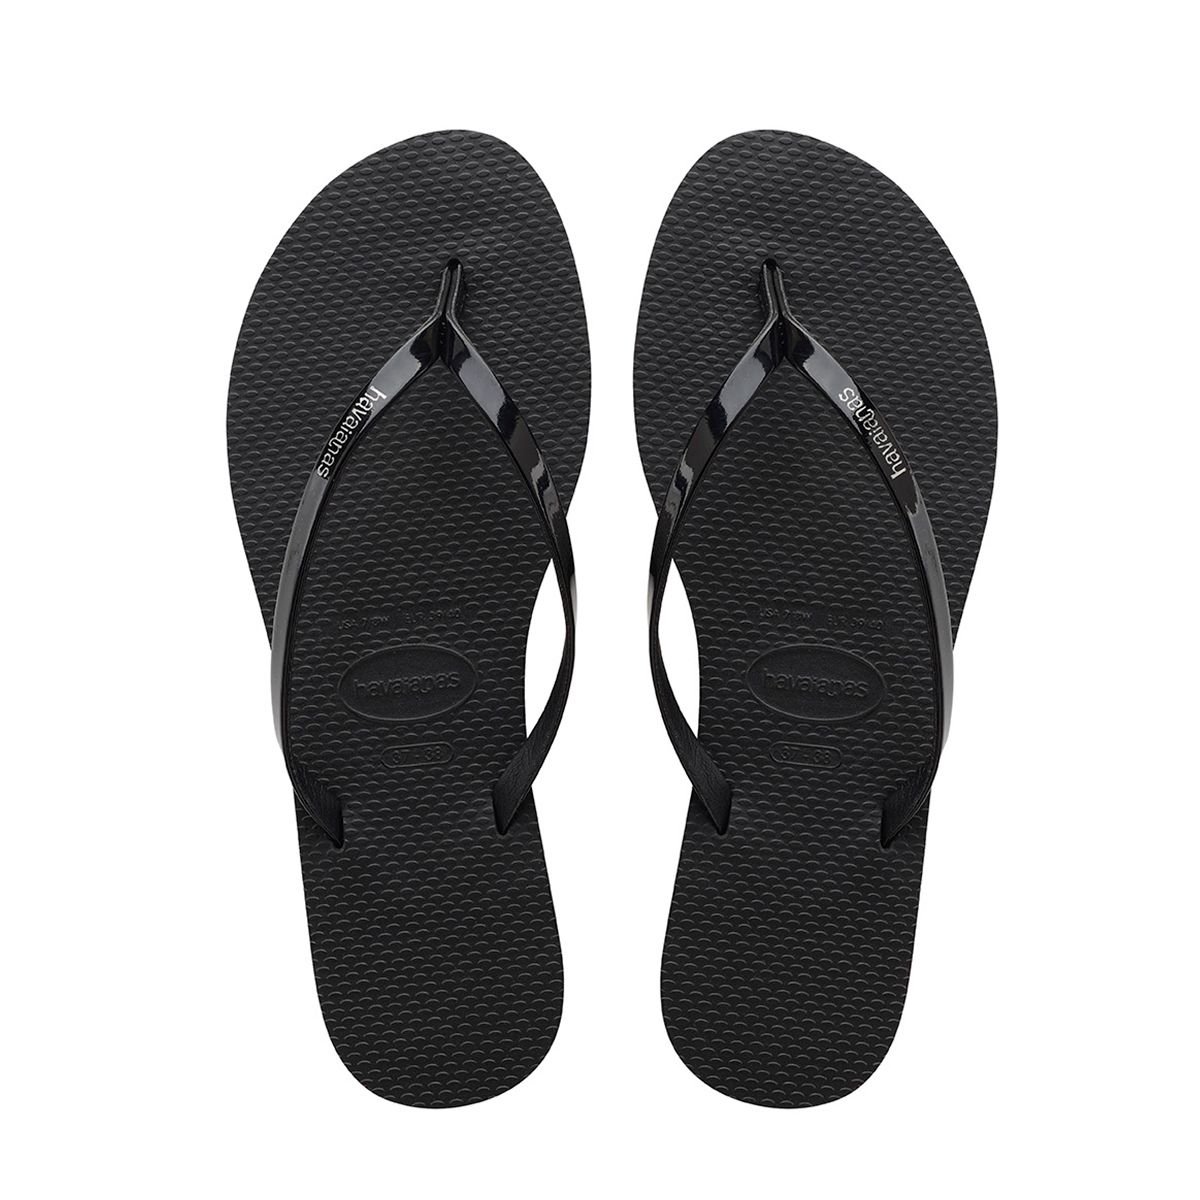 Tongs Brasil Layers BlackHavaianas 3rJEEyGP